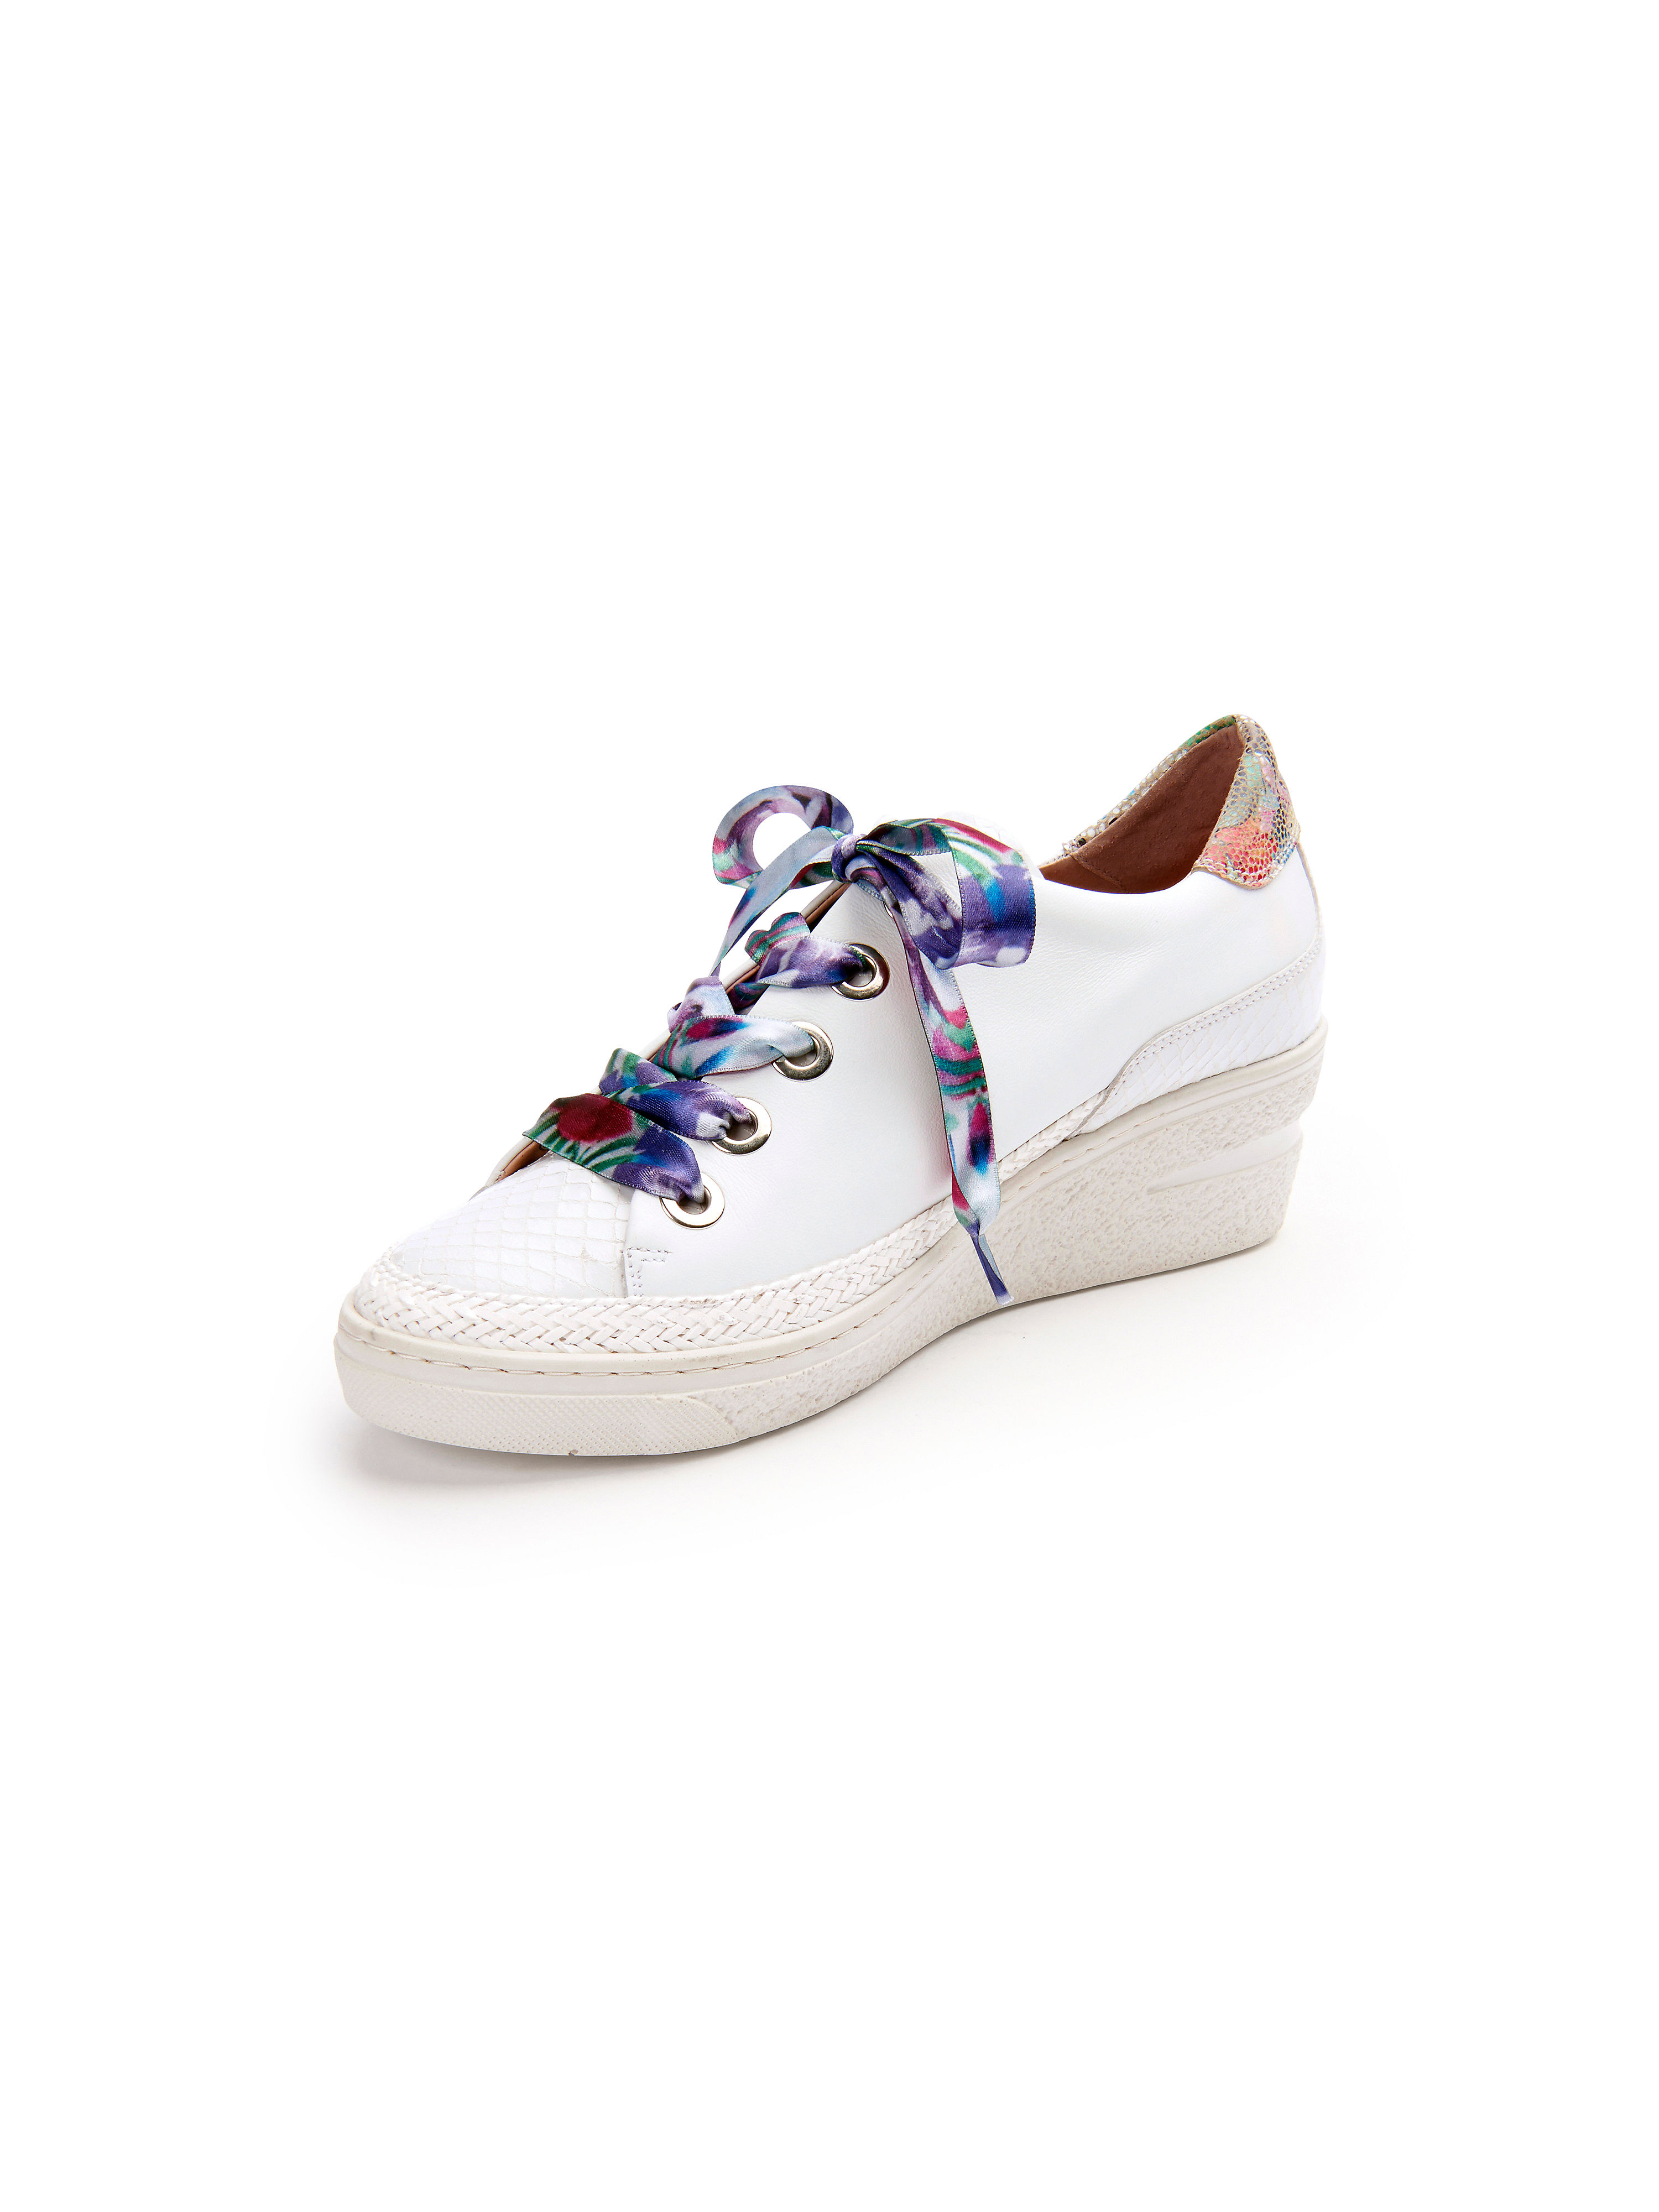 Les sneakers cuir - modèle Light Softy´s Softwaves blanc taille 42